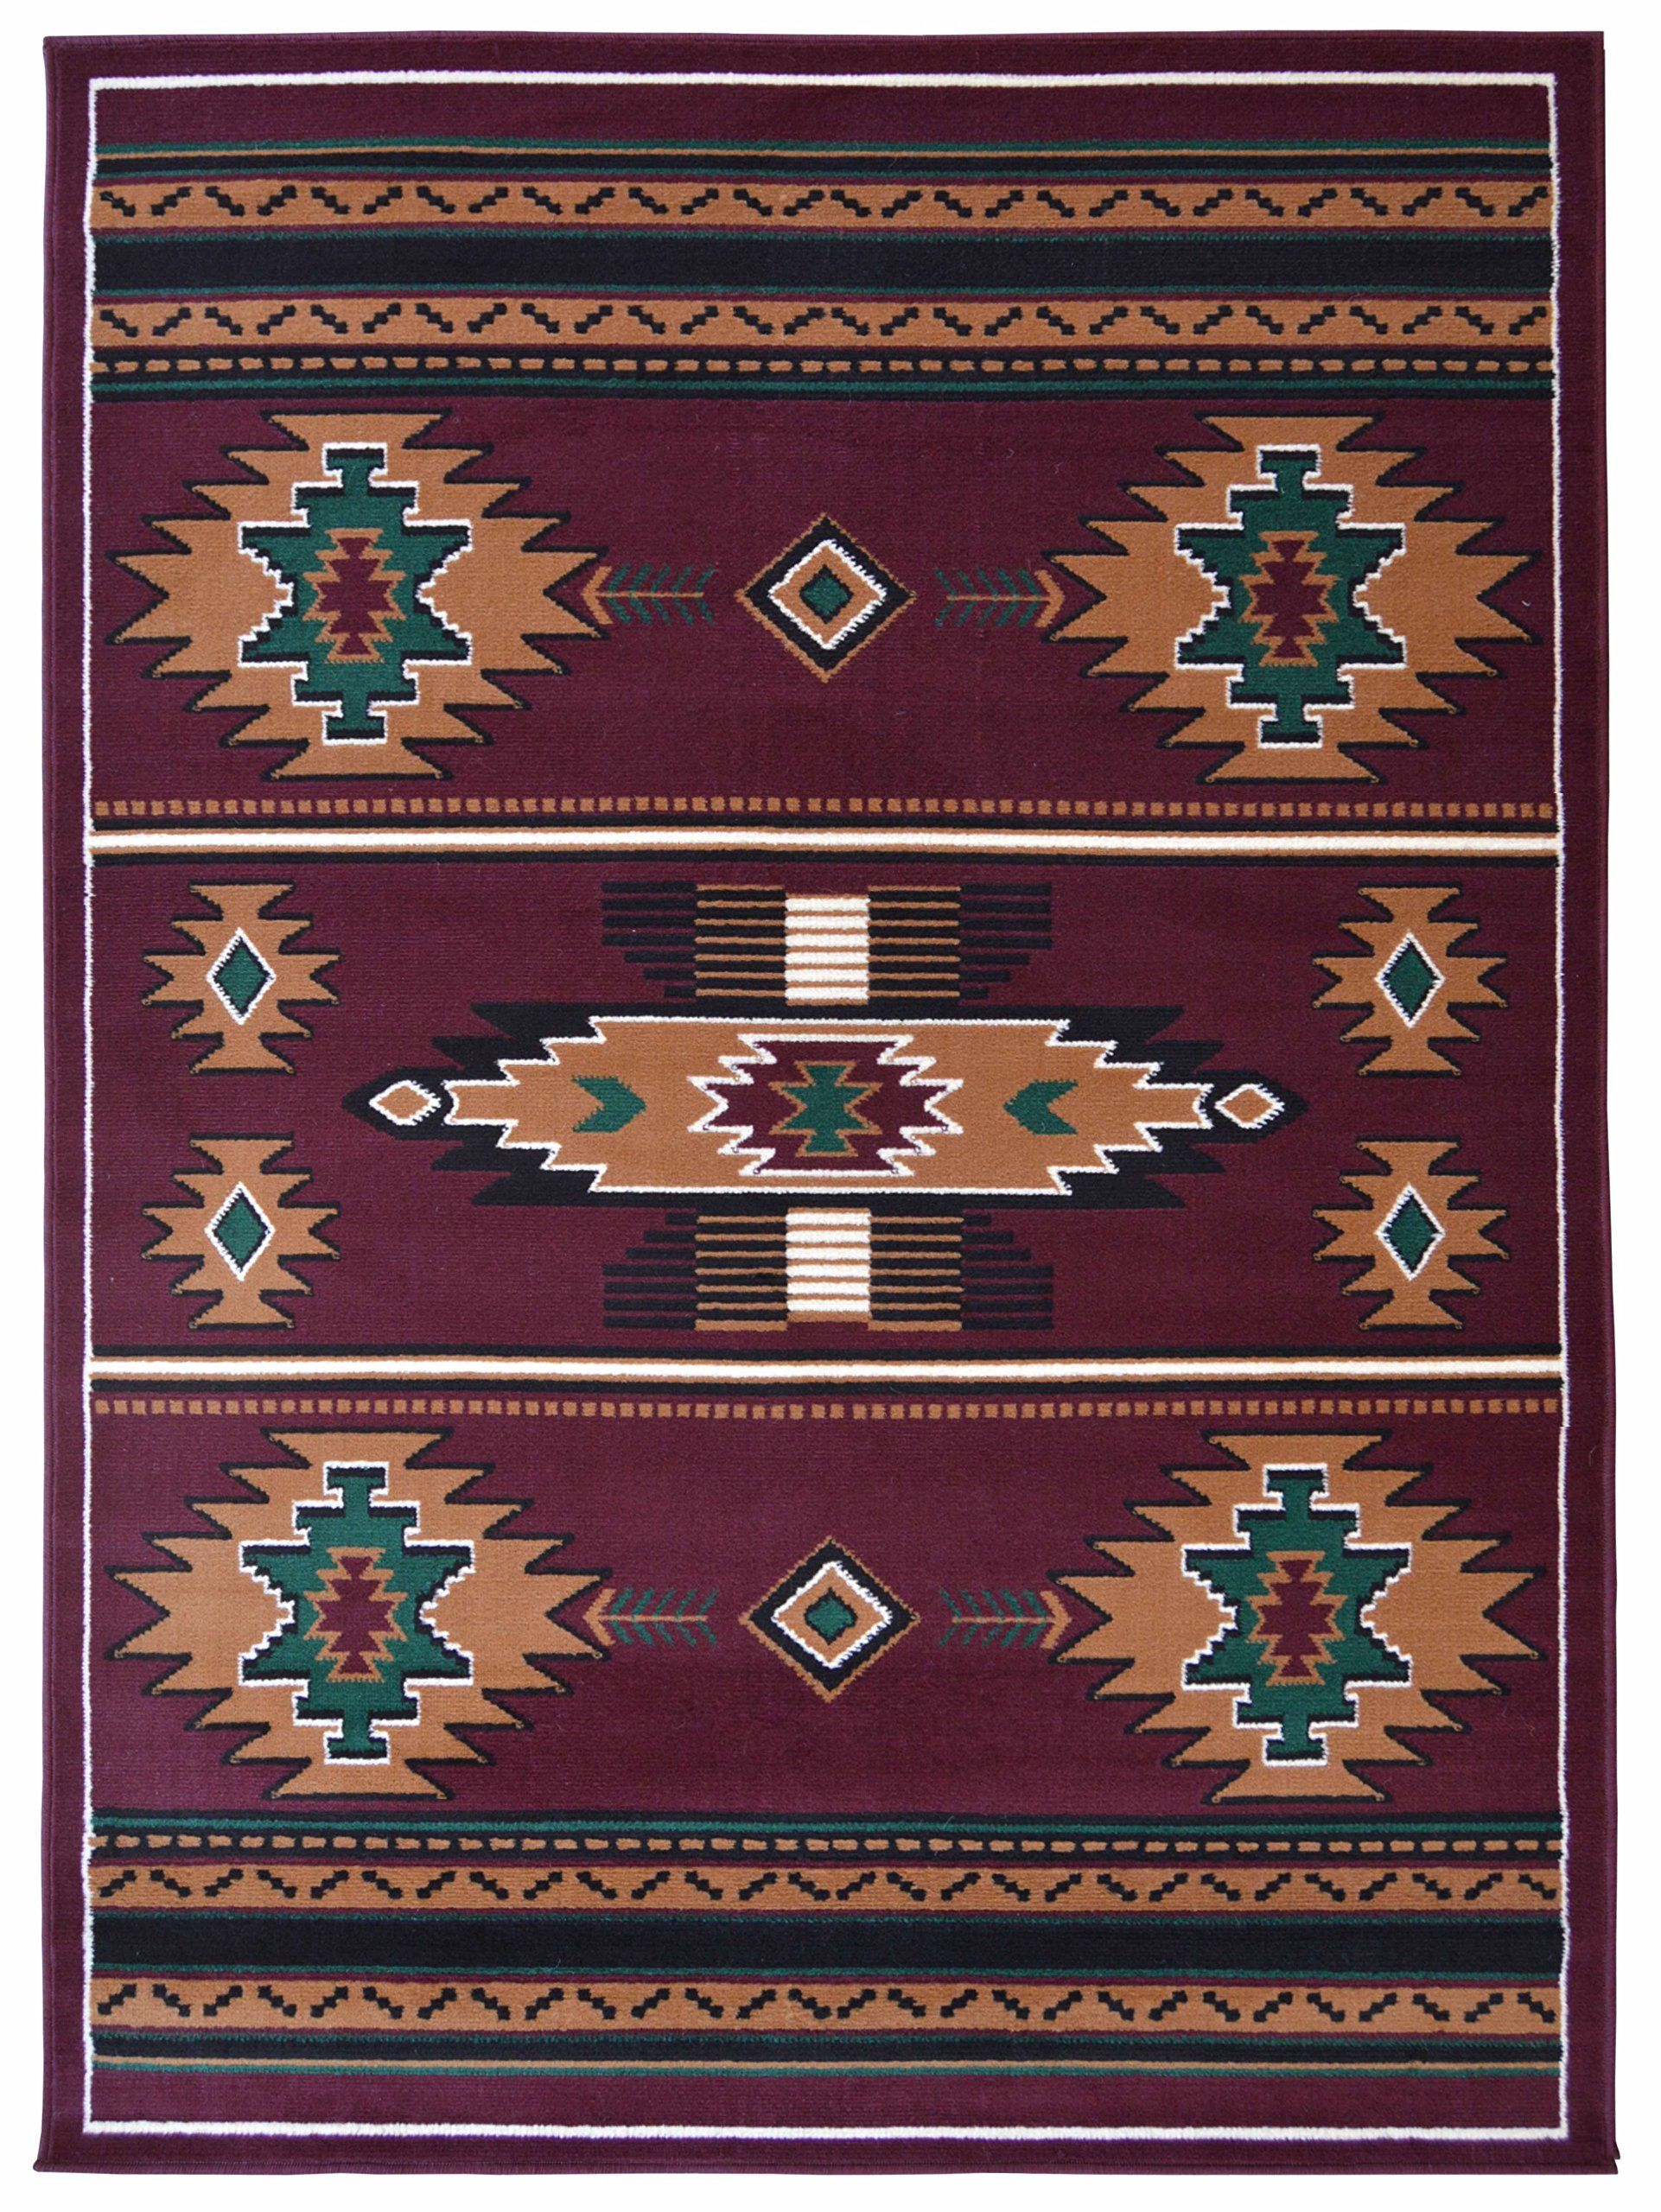 Rugs 4 Less Collection Southwest Native American Indian Area Rug Design R4l Sw3 In Burgundy